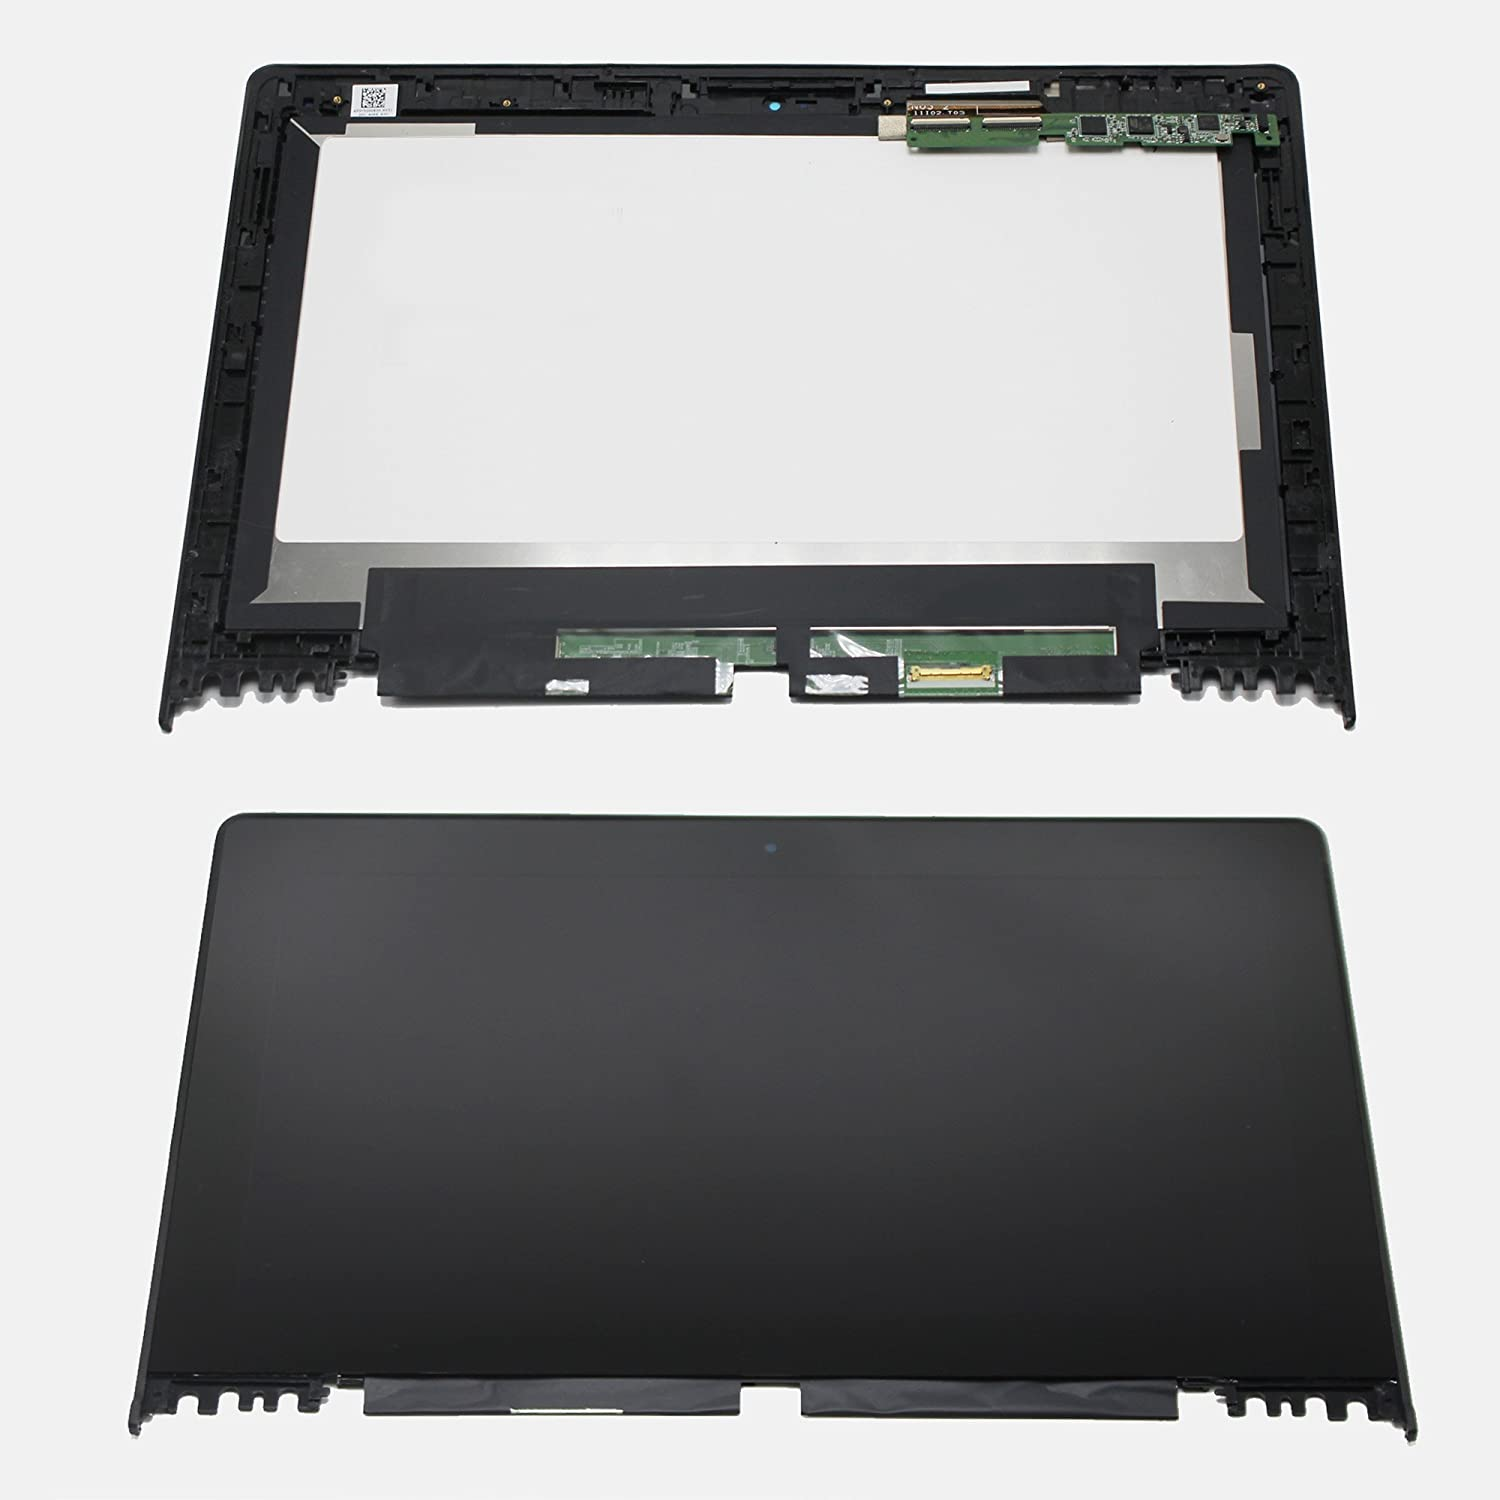 LCDOLED New LCD Screen Display+Touch Digitizer for Lenovo IdeaPad Yoga 2 11 20332 20428 + Frame